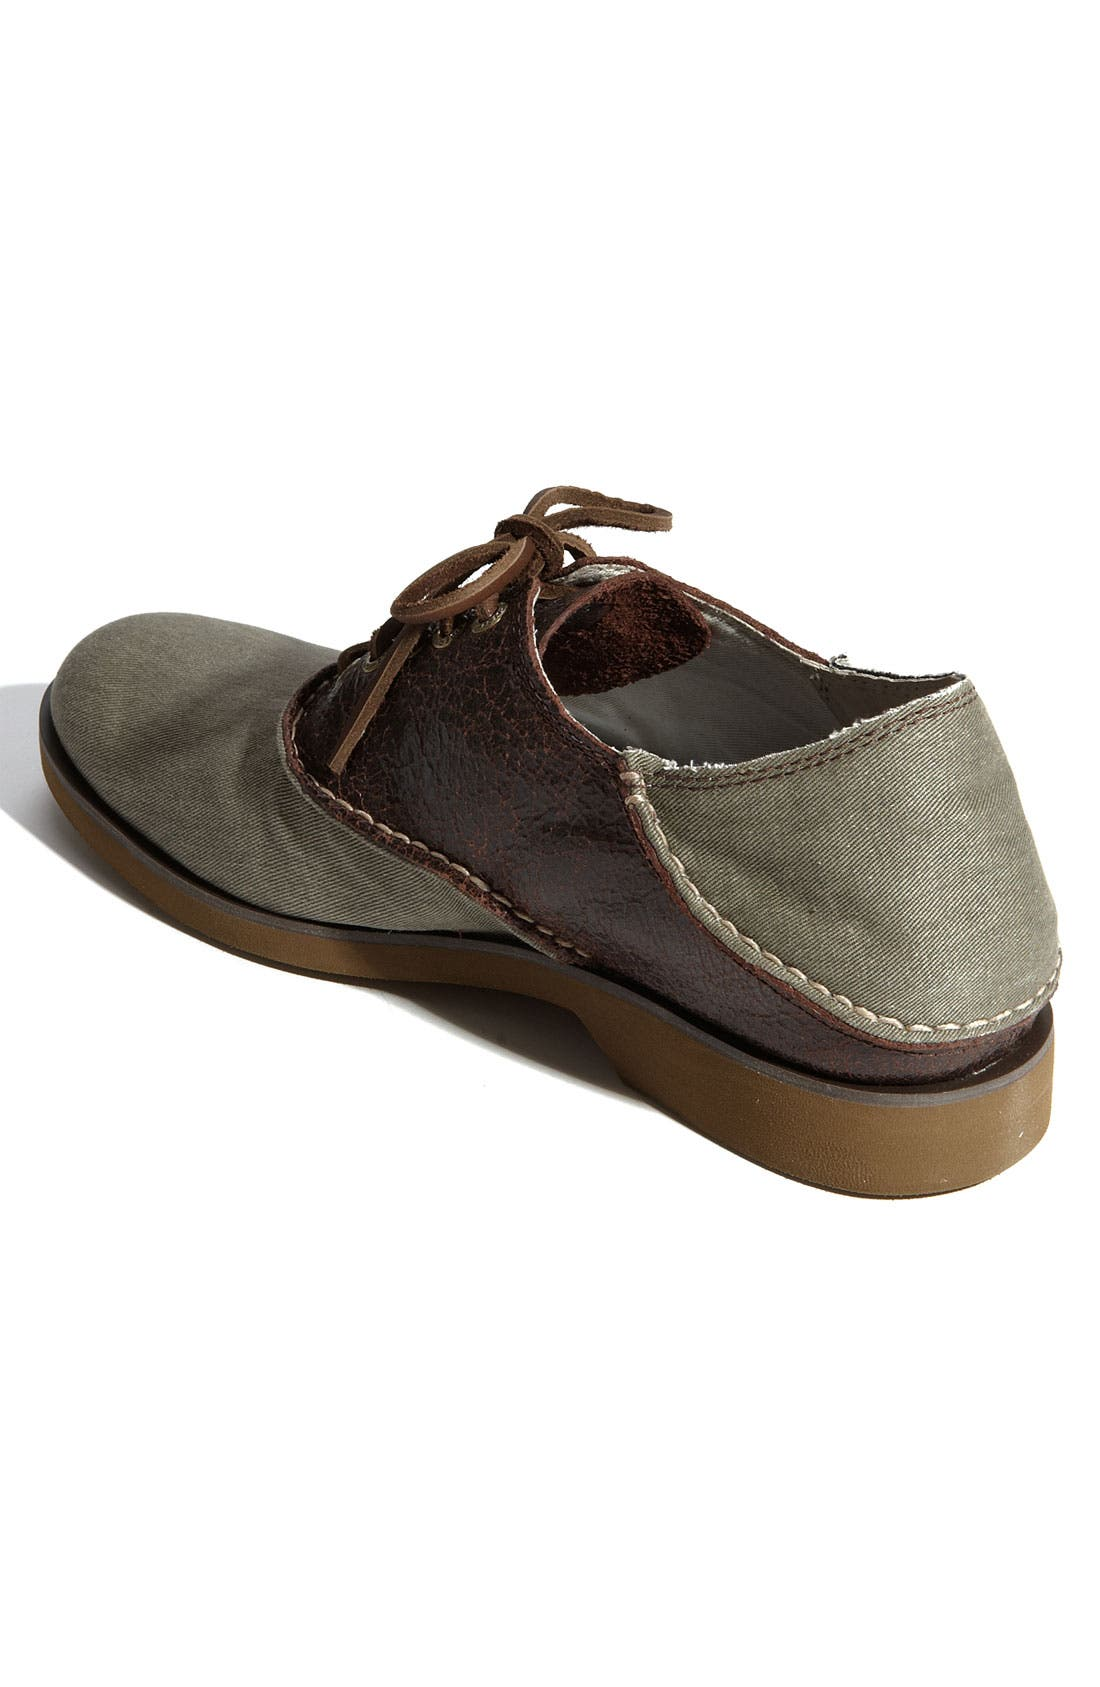 Alternate Image 2  - Sperry Top-Sider® 'Boat' Oxford Saddle Shoe